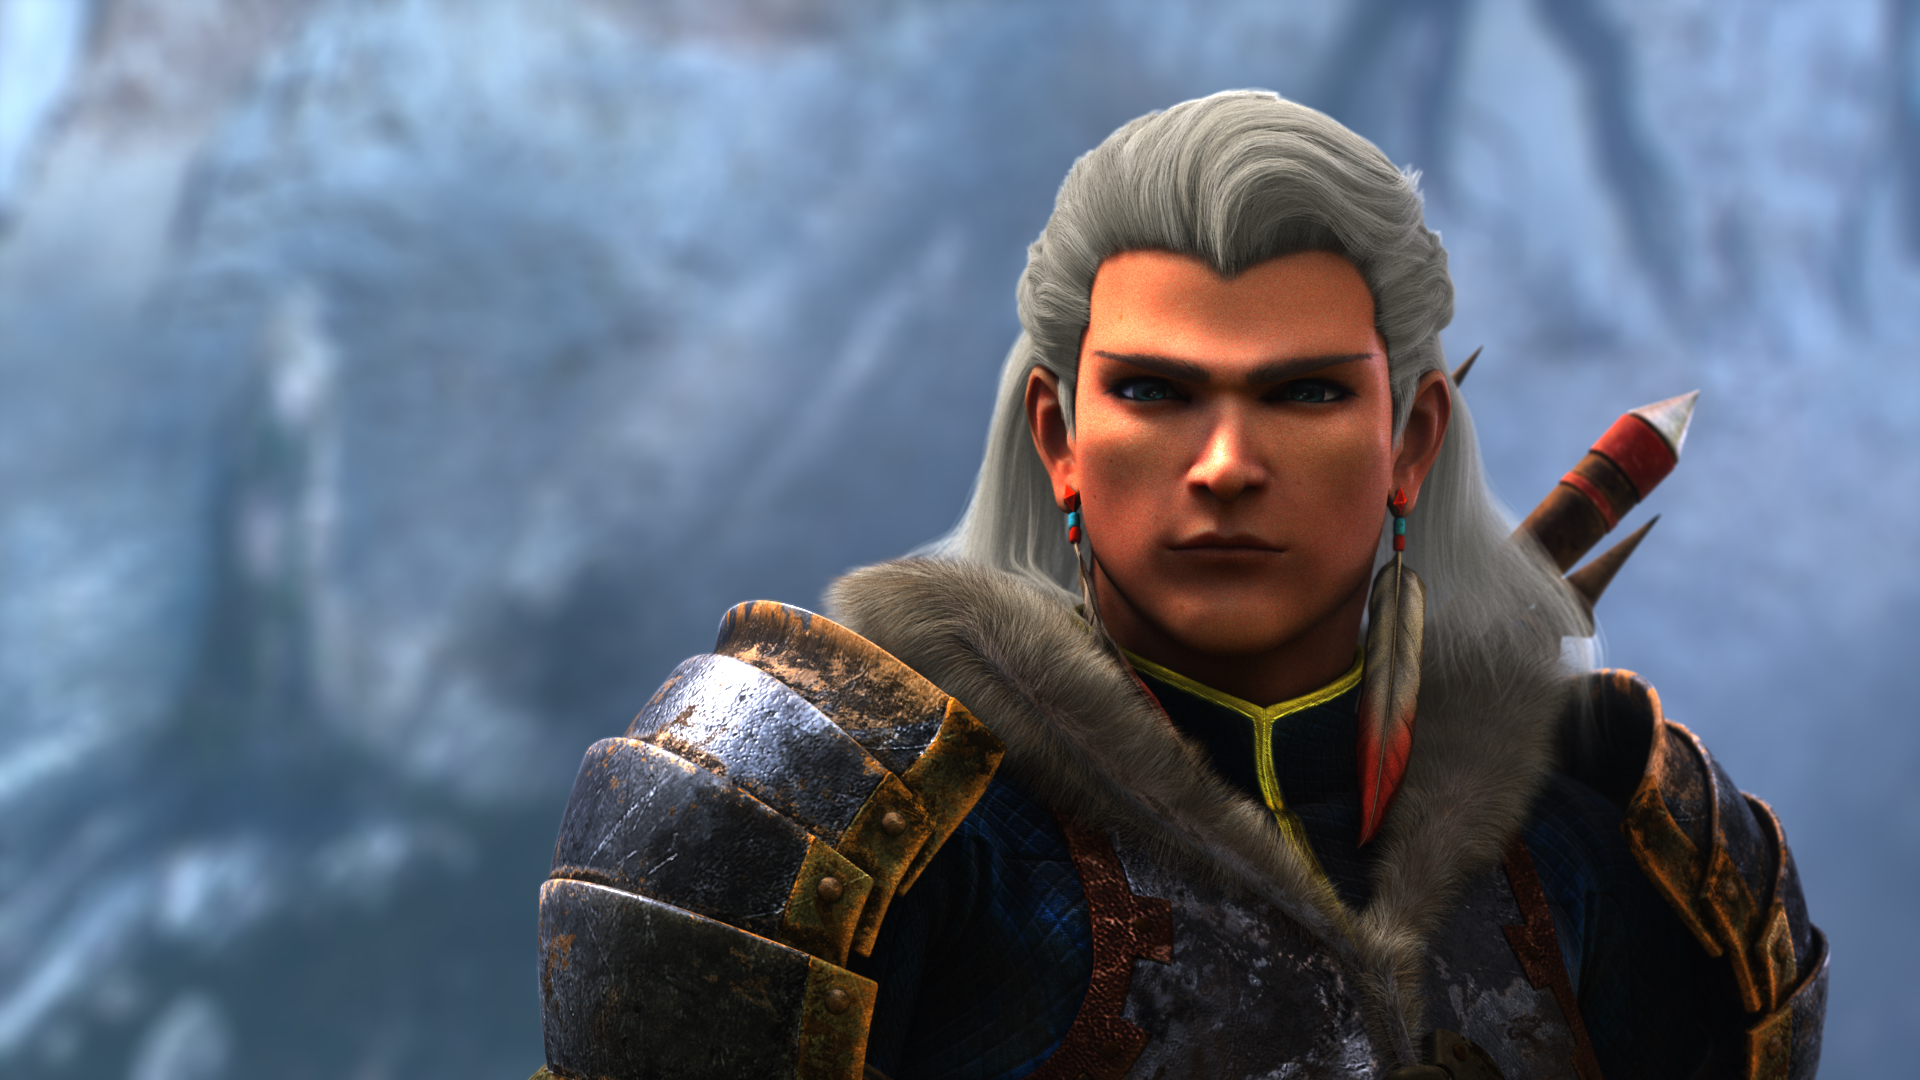 Julius, the snow-haired, Geralt-looking veteran hunter from the short animated film Monster Hunter: Legends of the Guild